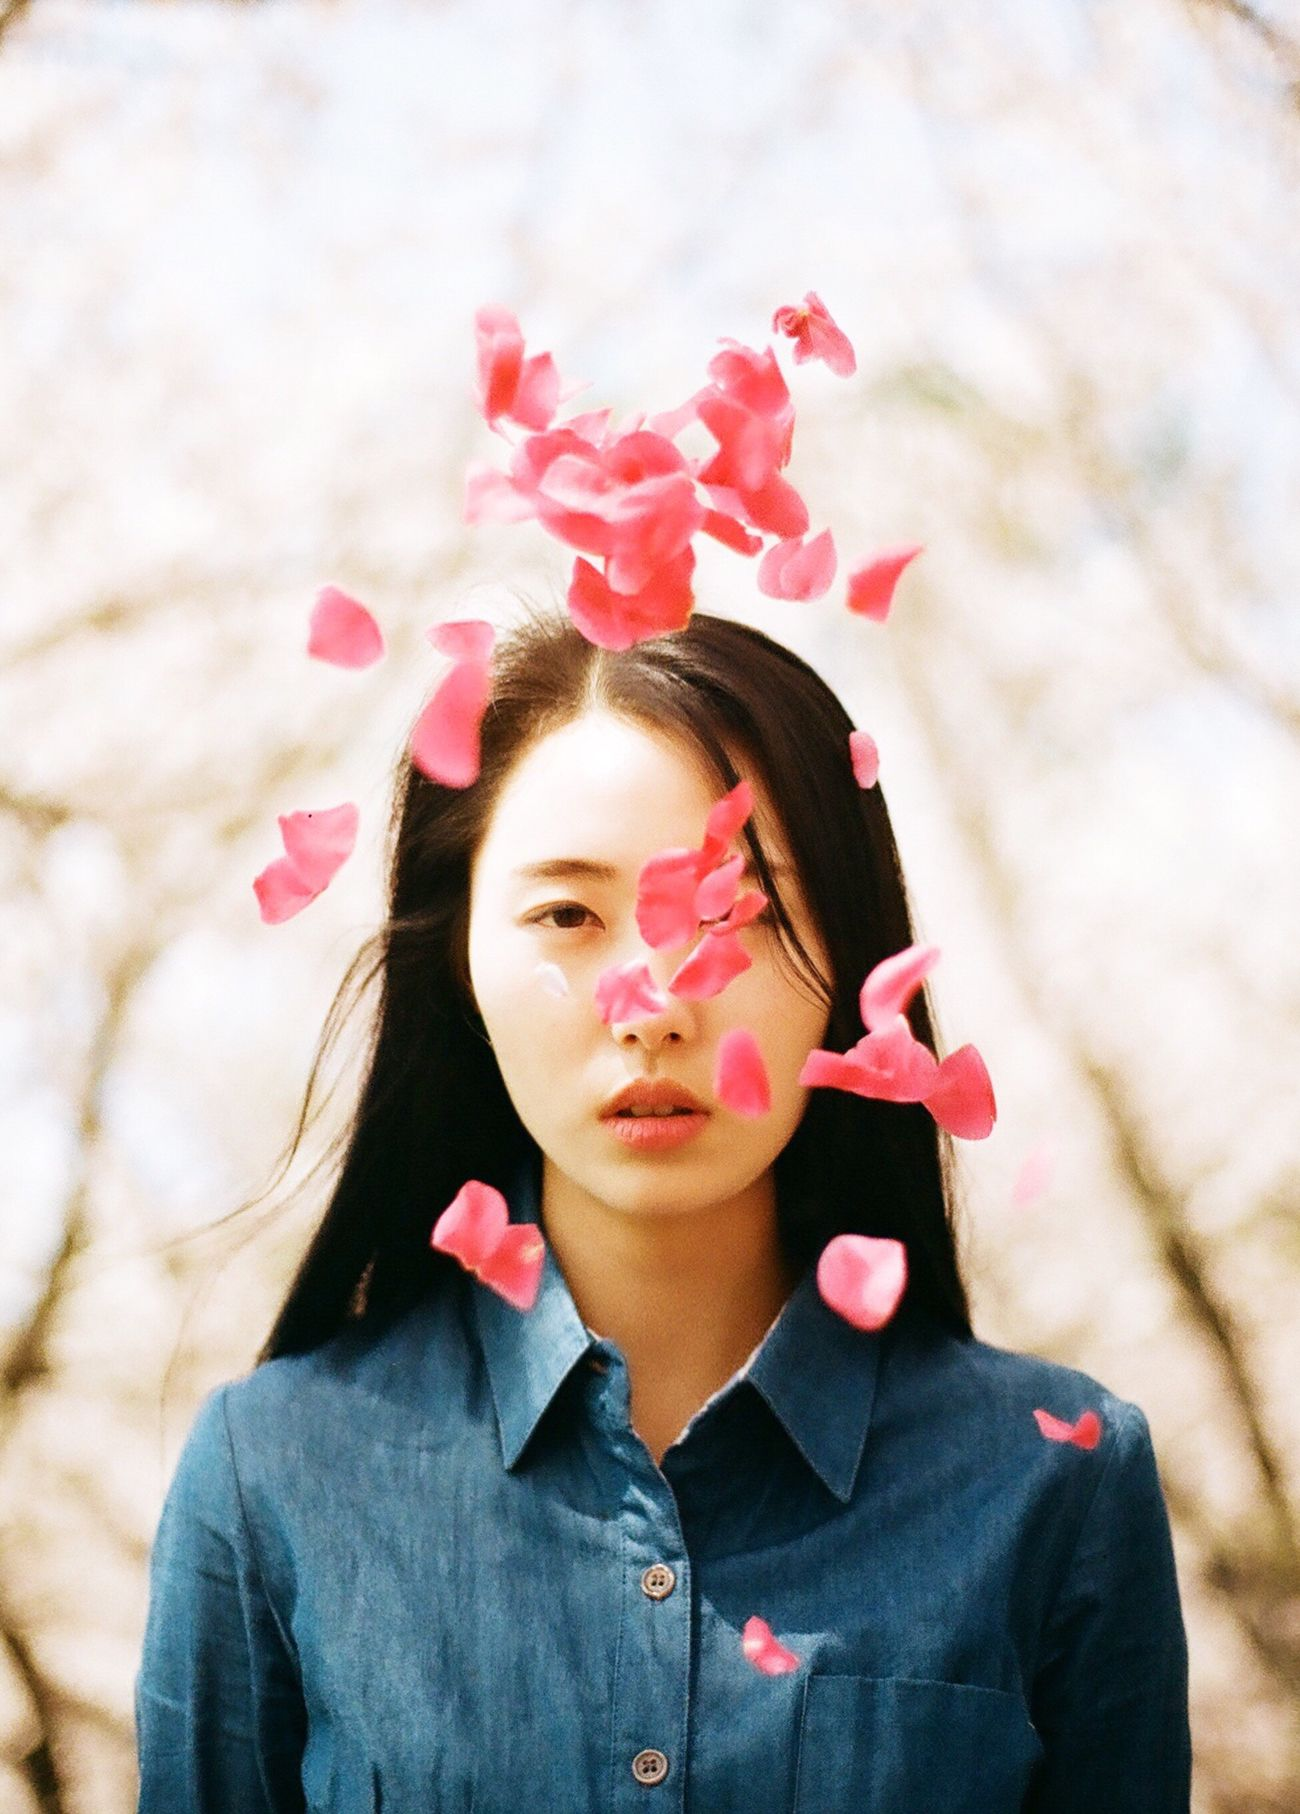 Film Filmisnotdead Analogue Photography Capture The Moment Daylight Spring Flowers Red Flower Blowing Pink Color Nature Korea Portrait Eye